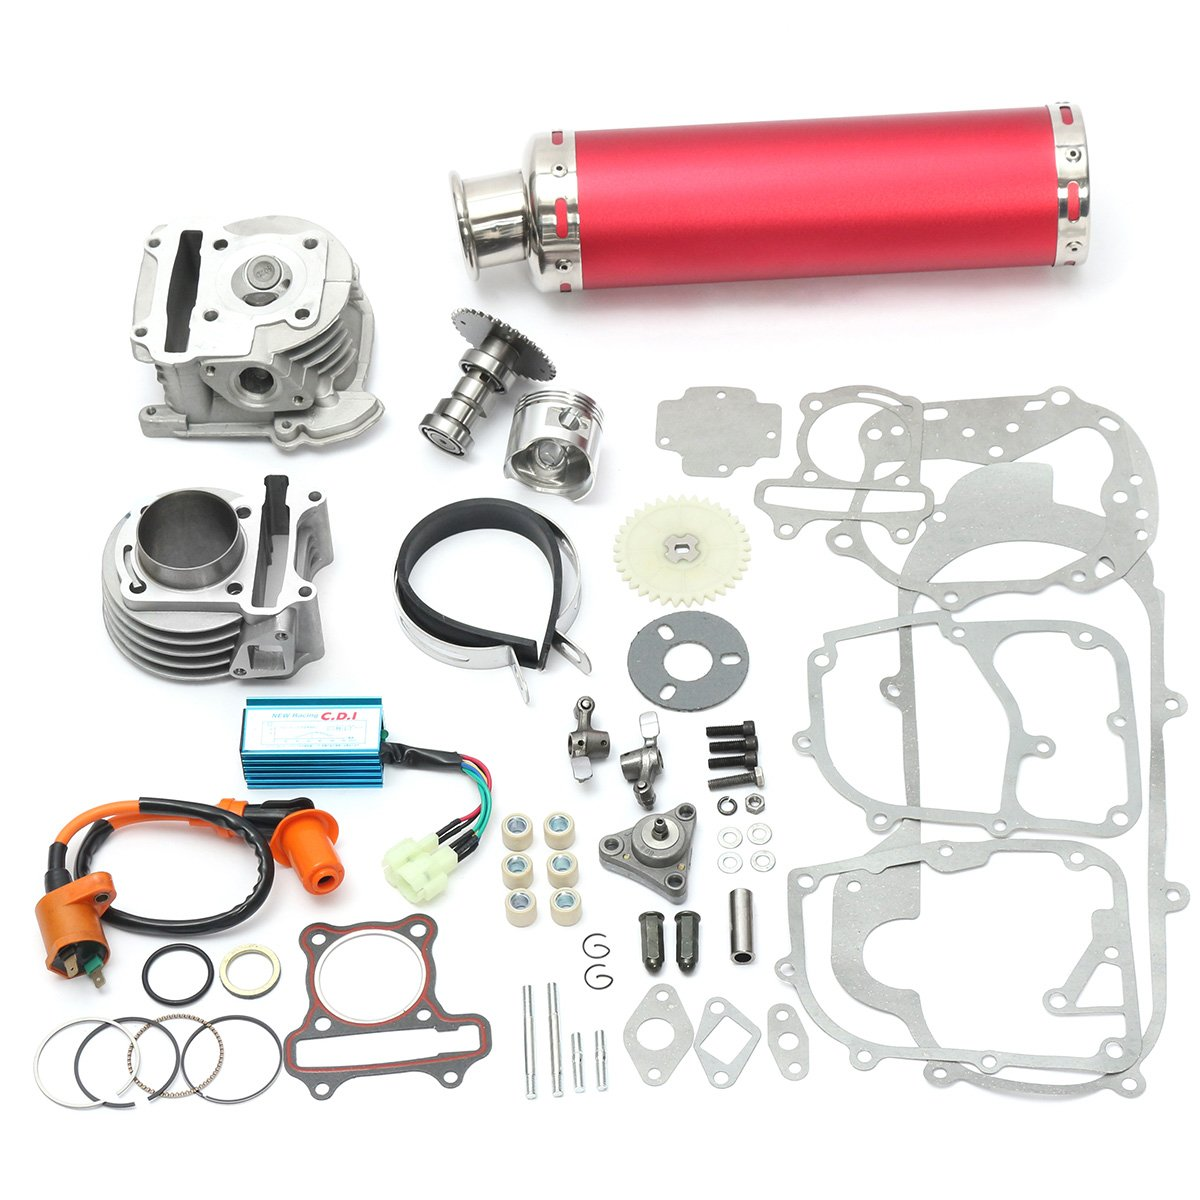 NeDonald 100cc 50mm Chinese Scooter Big Bore Exhaust Performance Kit Power Pack GY6 50cc